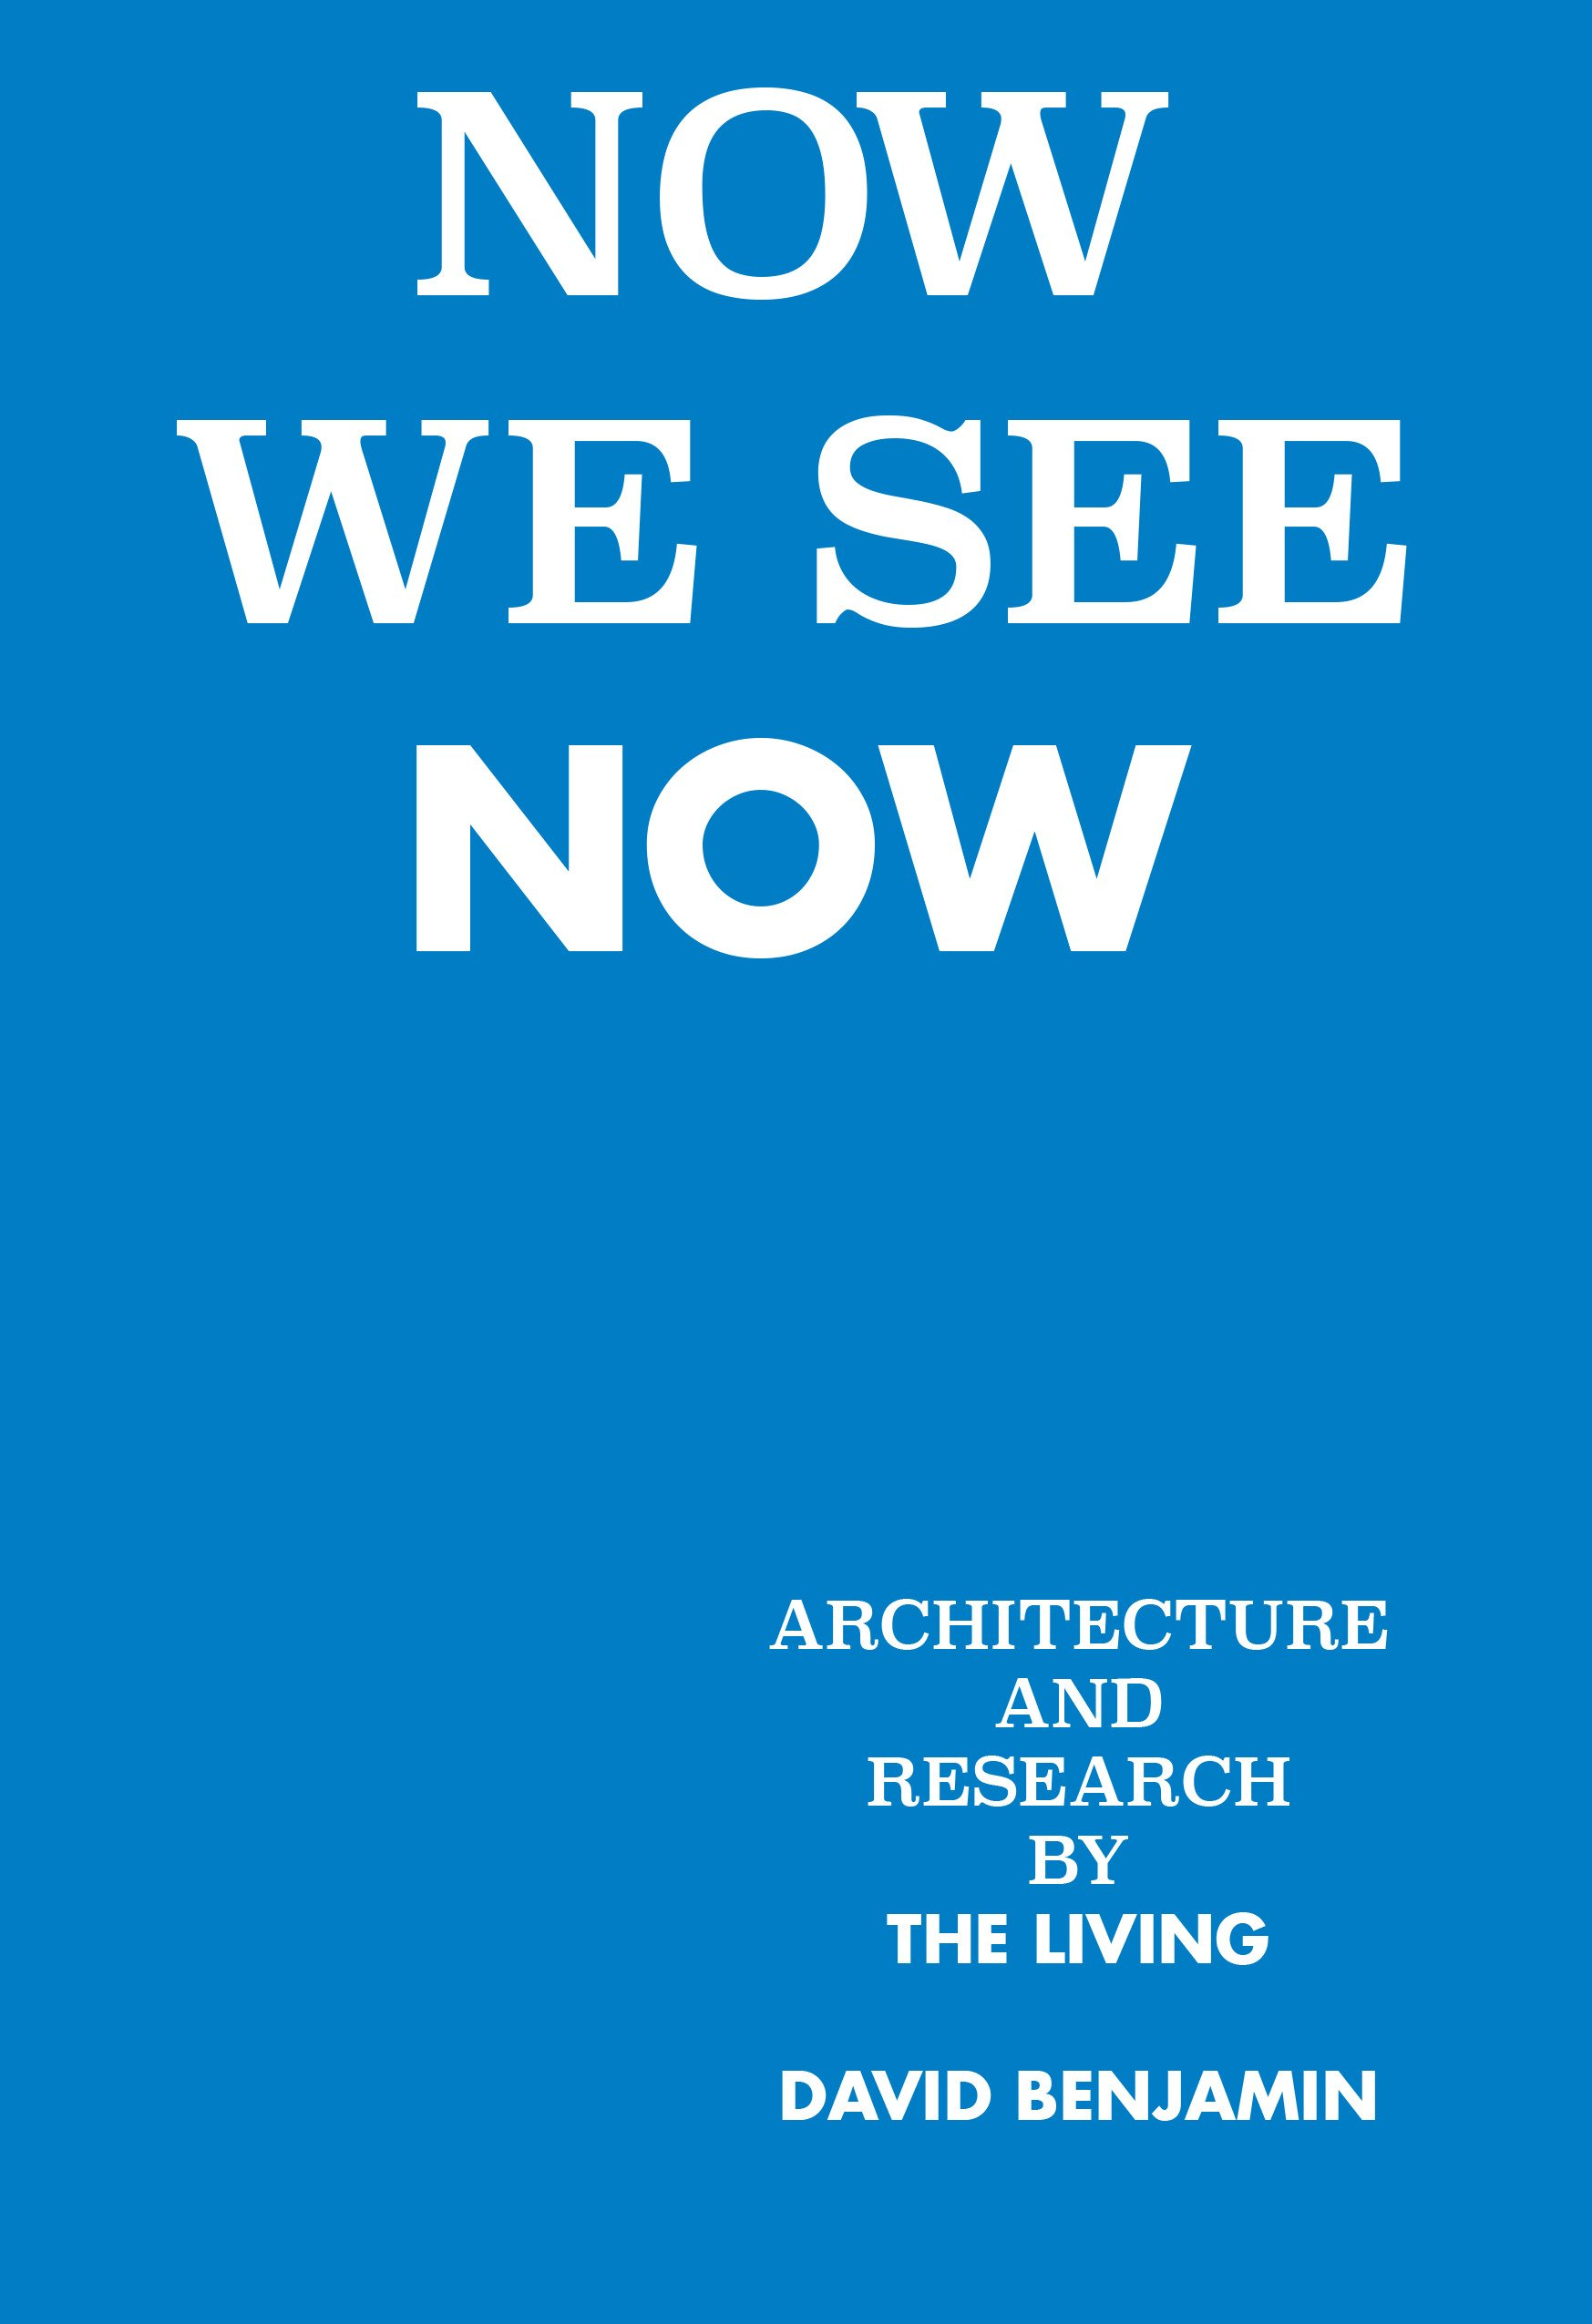 Now We See Now: Architecture and Research by The Living